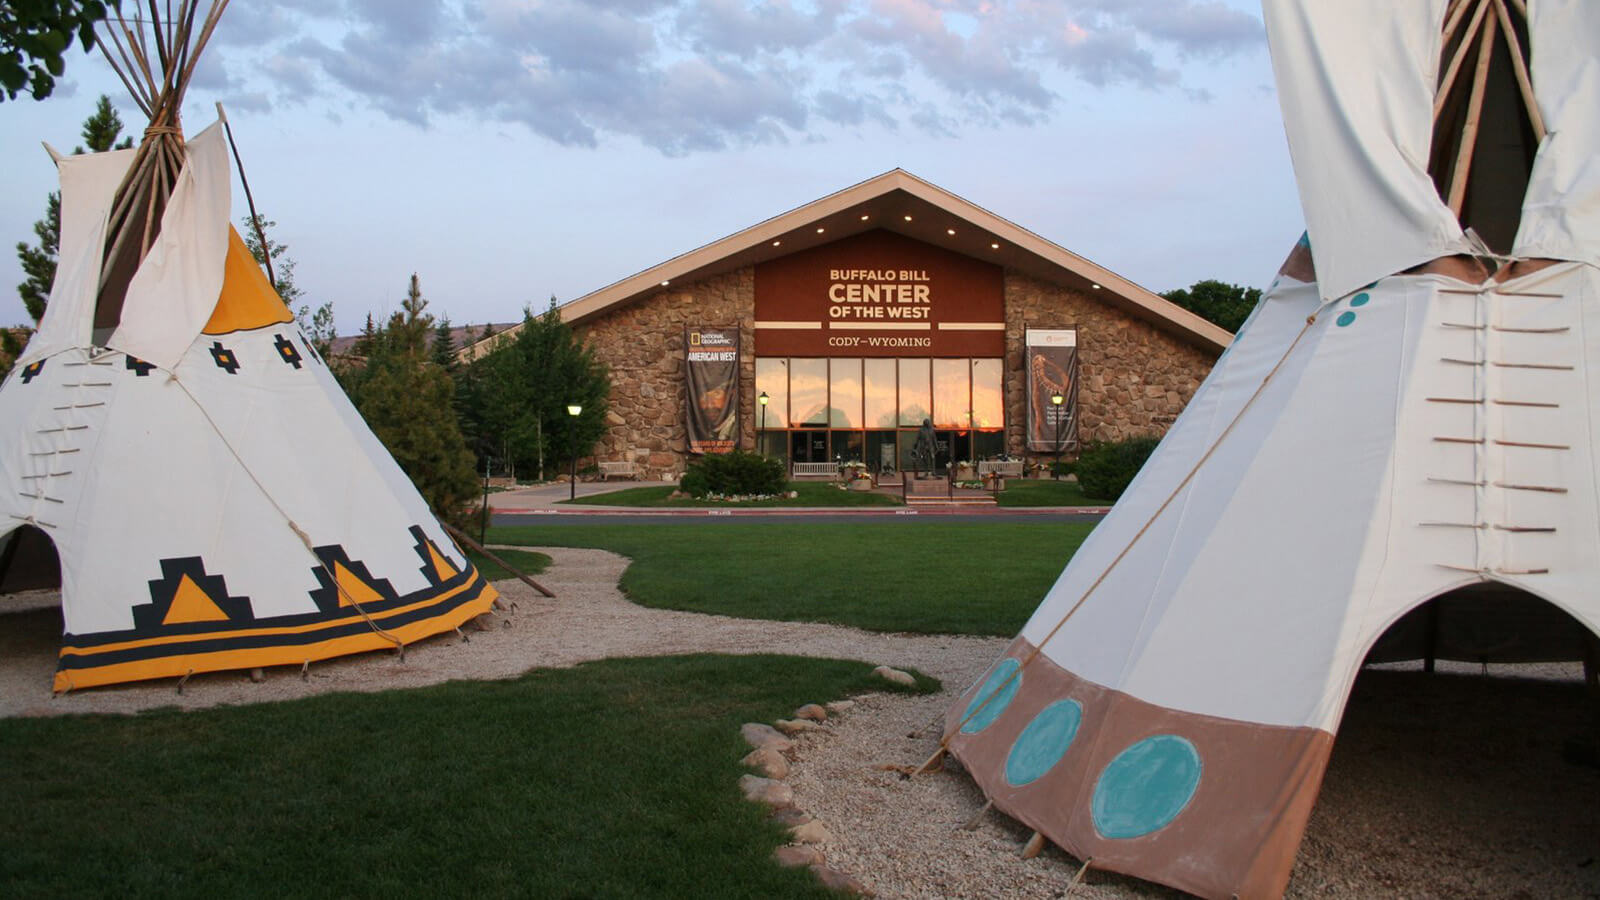 Museum with teepee display out front